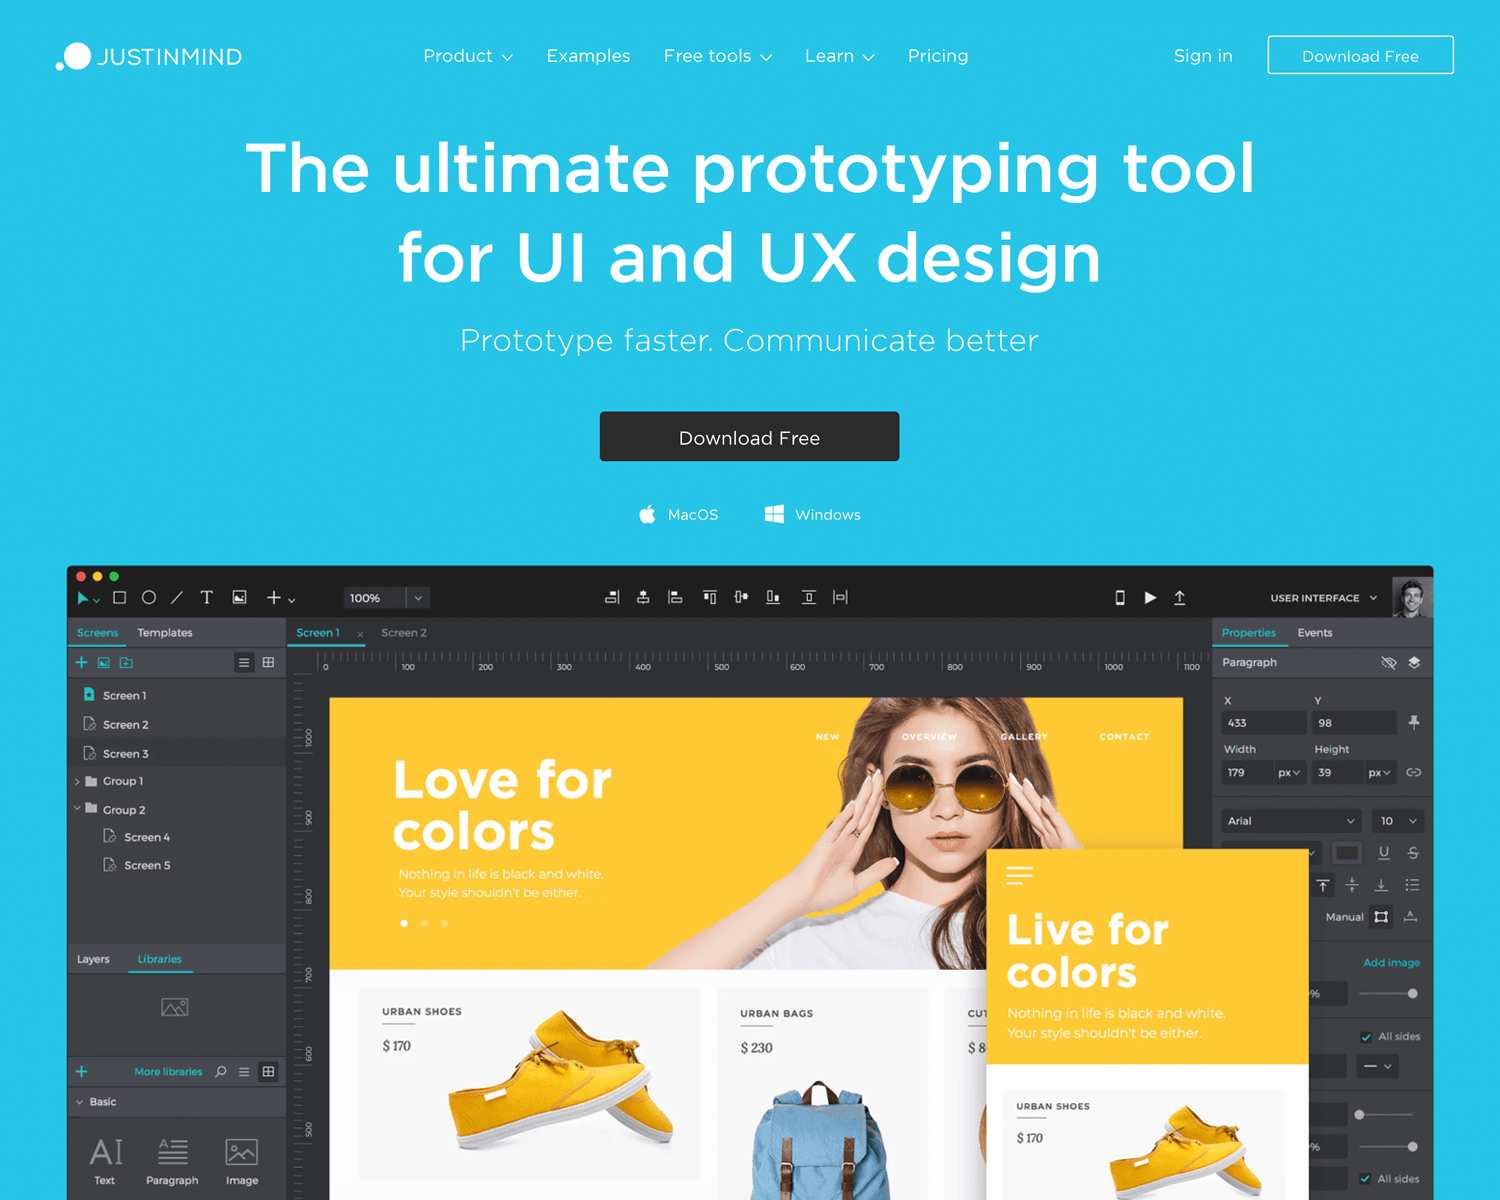 Best UI design tools - Justinmind